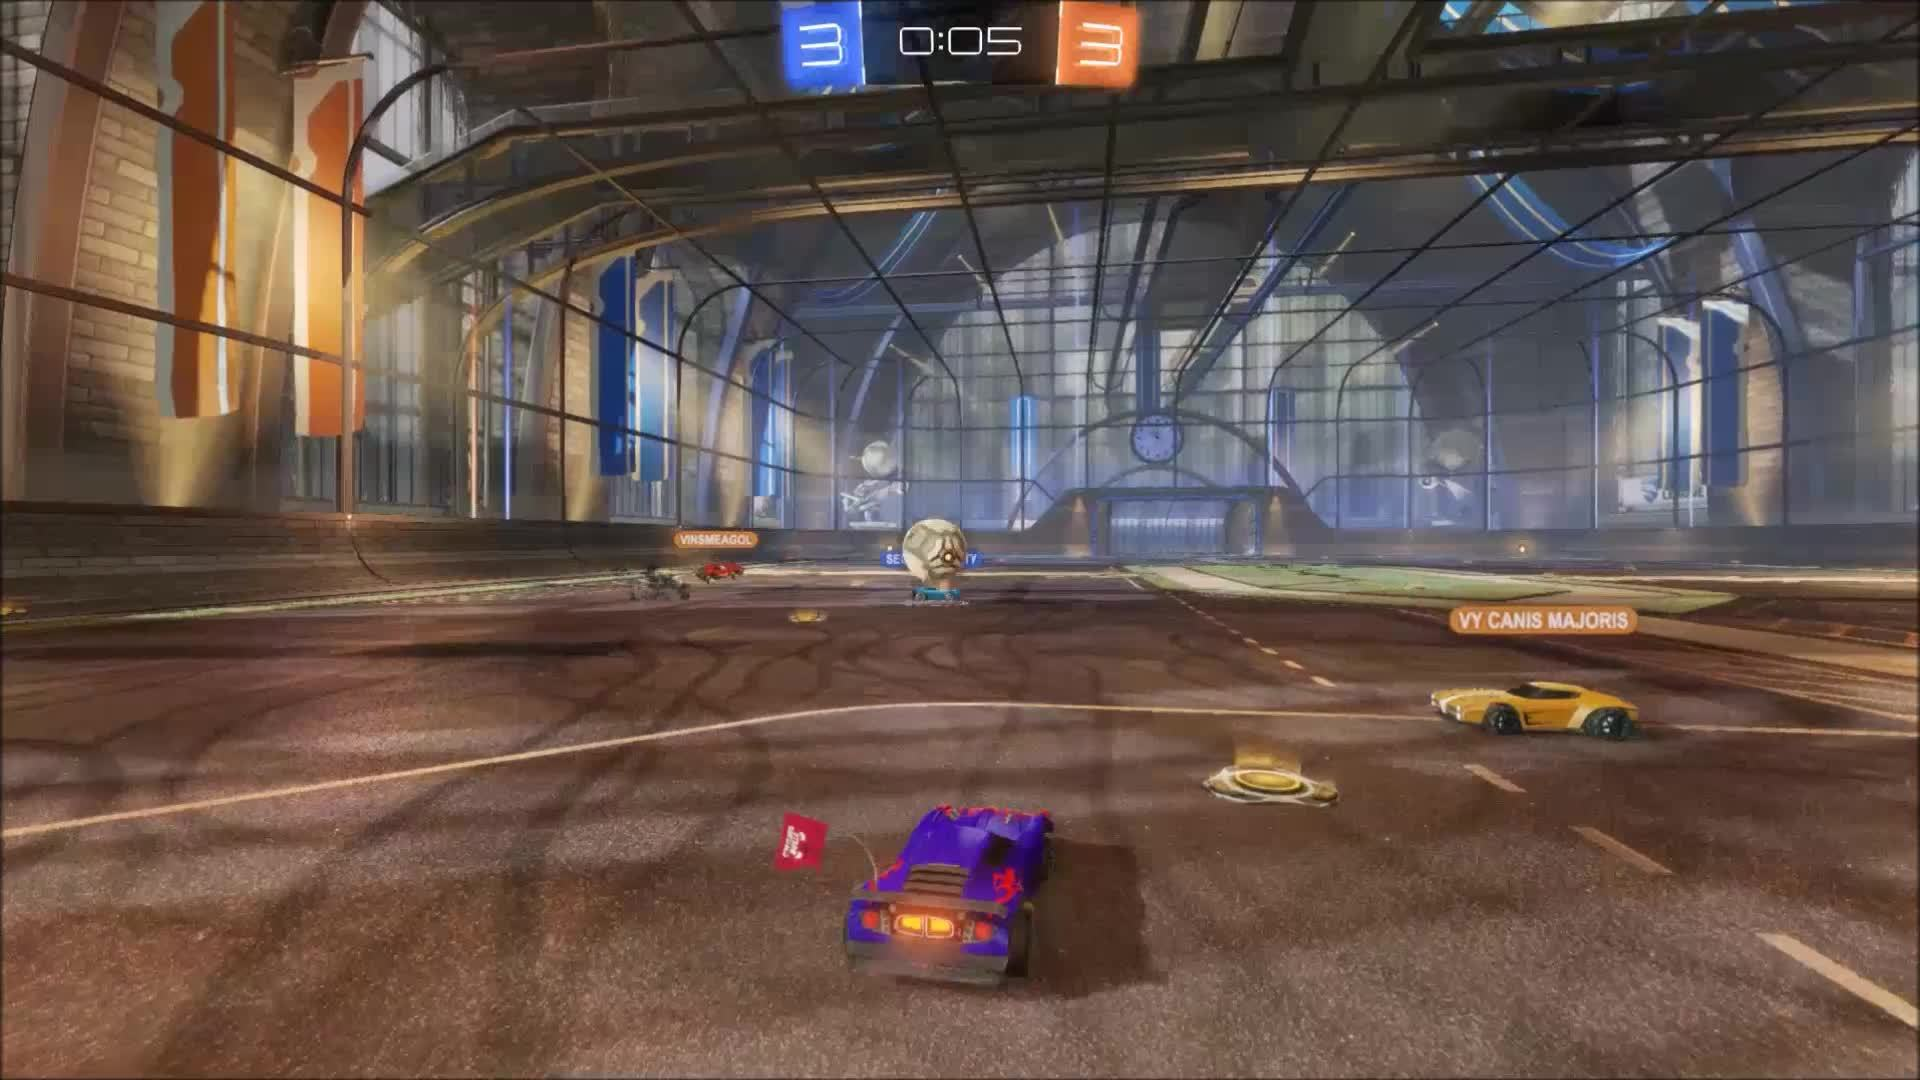 Rocket League, RocketLeague, yesyesyesno, I can't believe I'm going to be the hero. This is the day I've always dreamed of. This is going to be great, there's going to be a parade and fireworks and... (reddit) GIFs